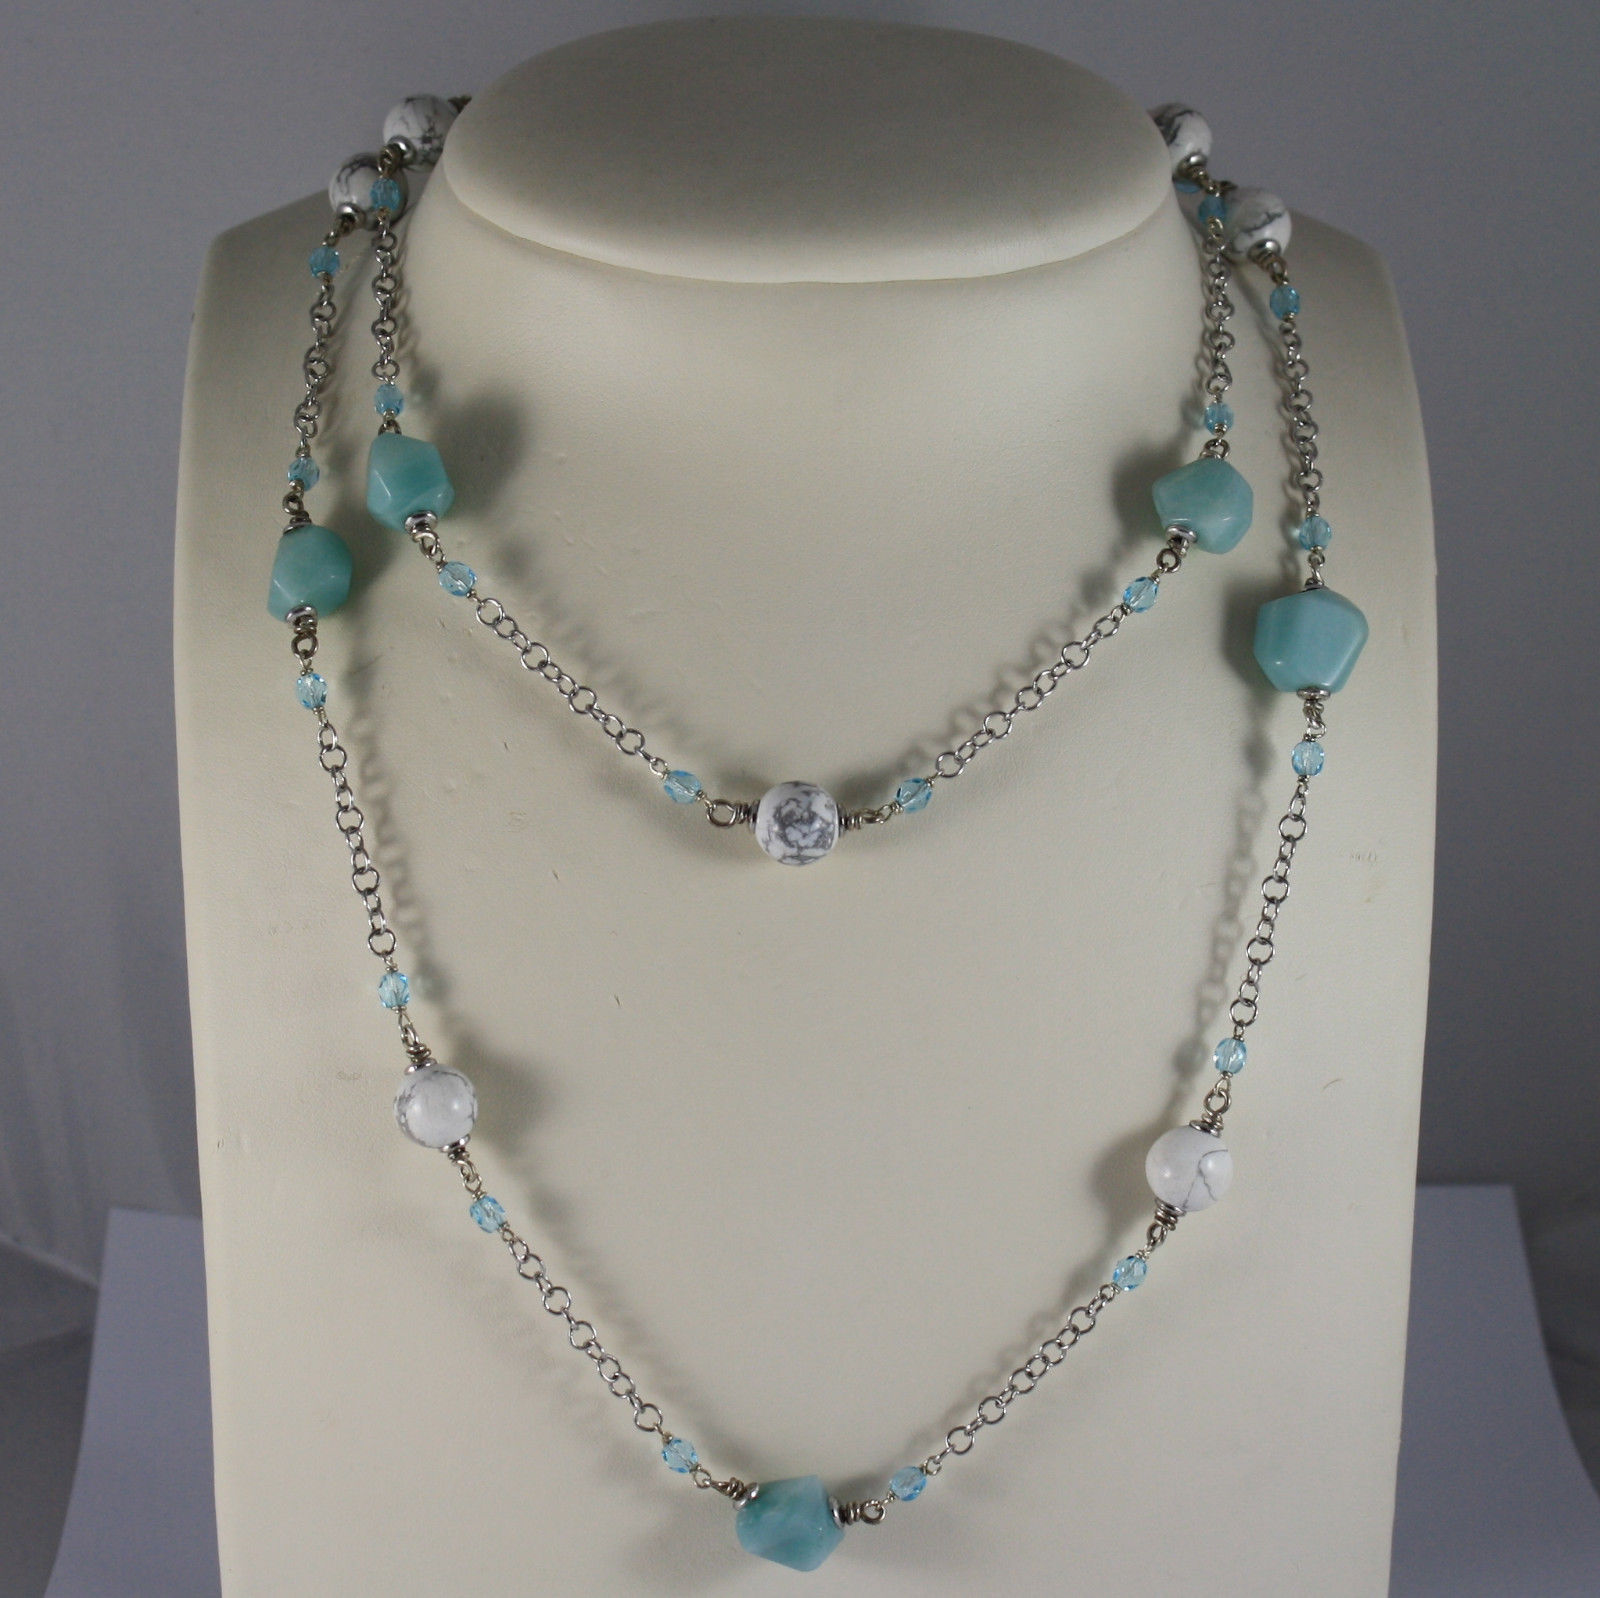 .925 RHODIUM SILVER NECKLACE WITH WHITE HOWLITE, BLUE CRISTALS AND BLUE QUARTZ